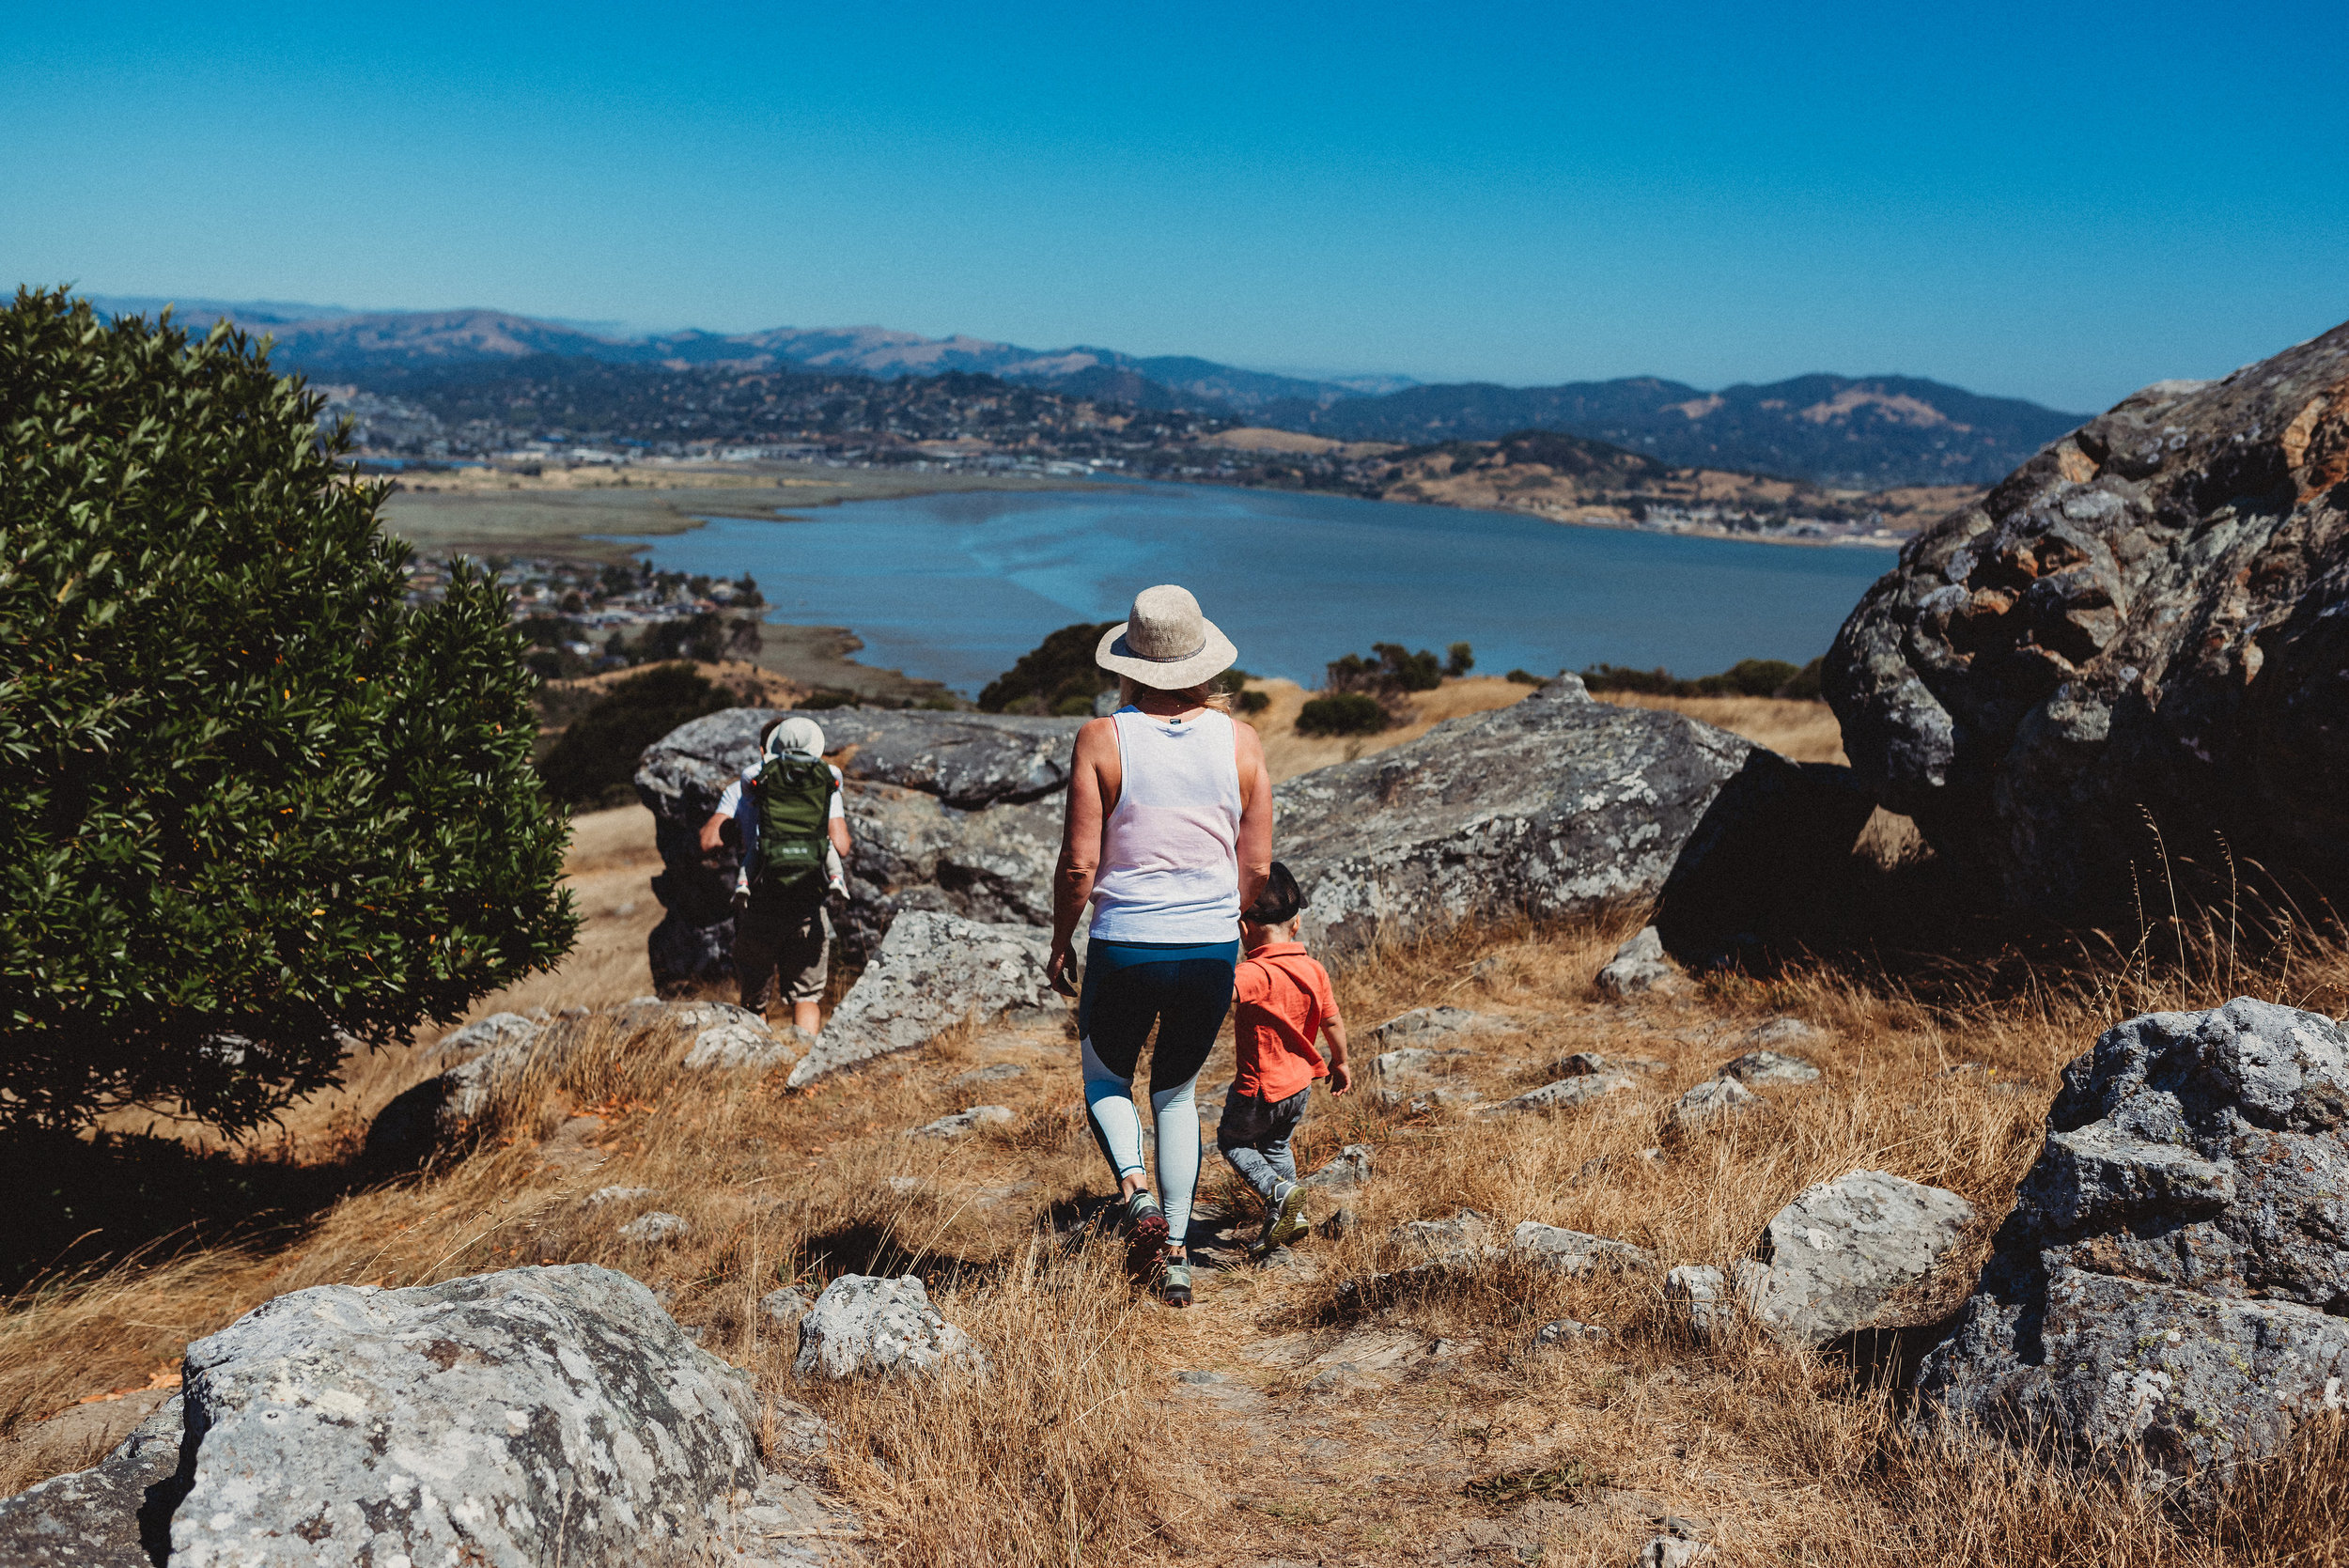 sunday morning family hike family time quality time california mountains hiking10.jpg